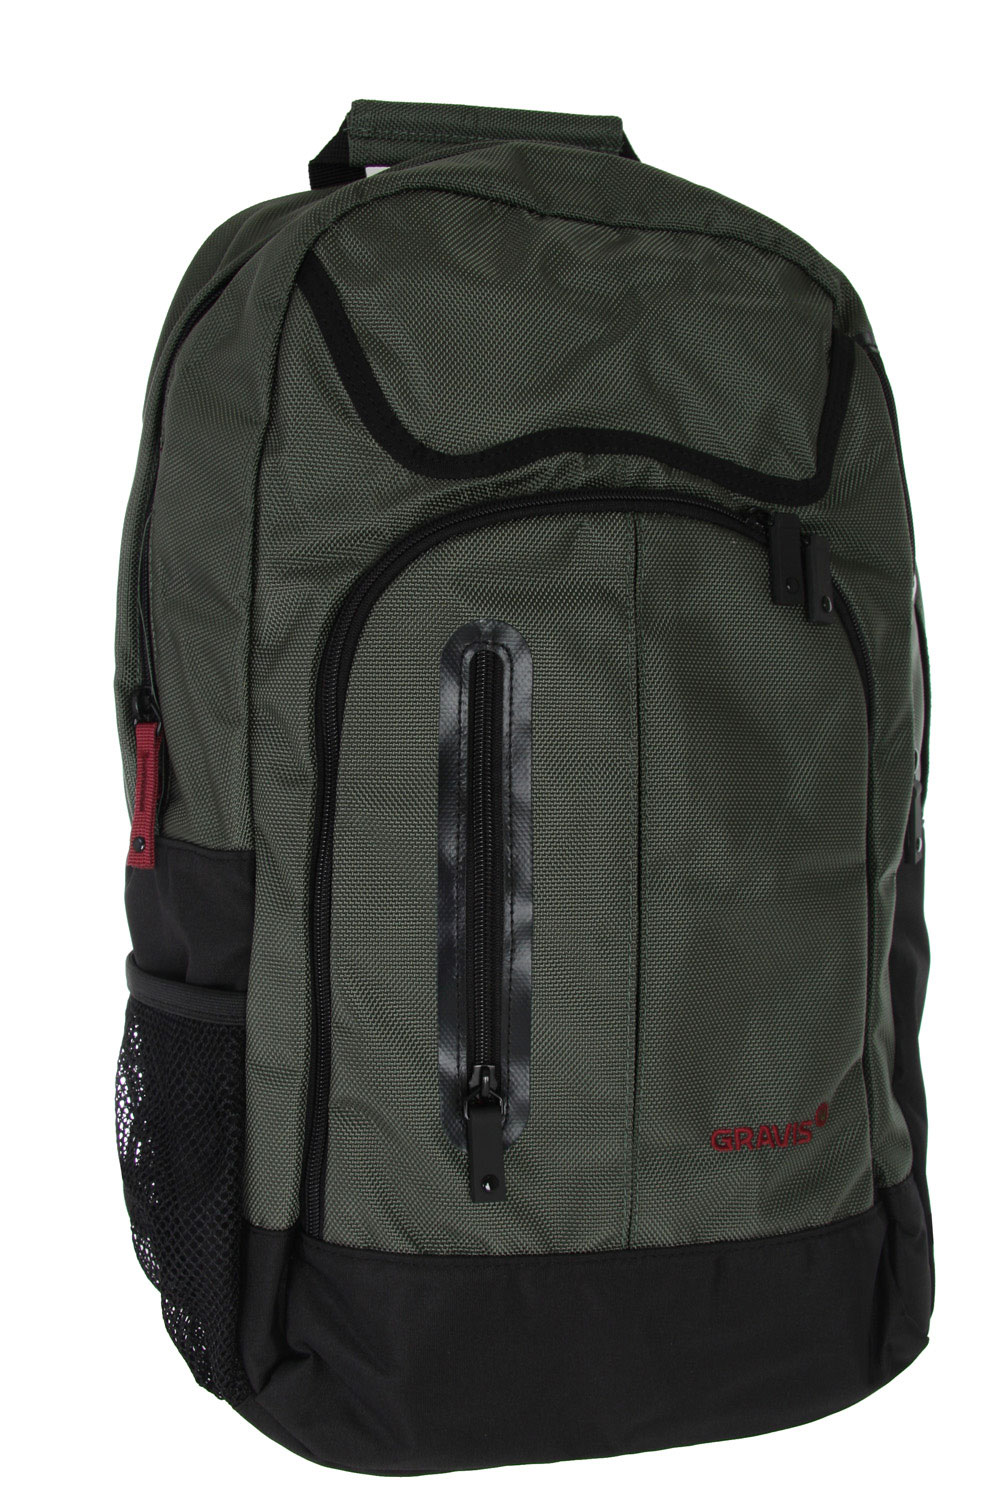 Key Features of the Gravis Sureshot Backpack: Padded internal laptop compartment Hidden side zipper stash pocket Front zipper stash pockets Volume: 21L Dimensions: 51x33x18cm - $38.95